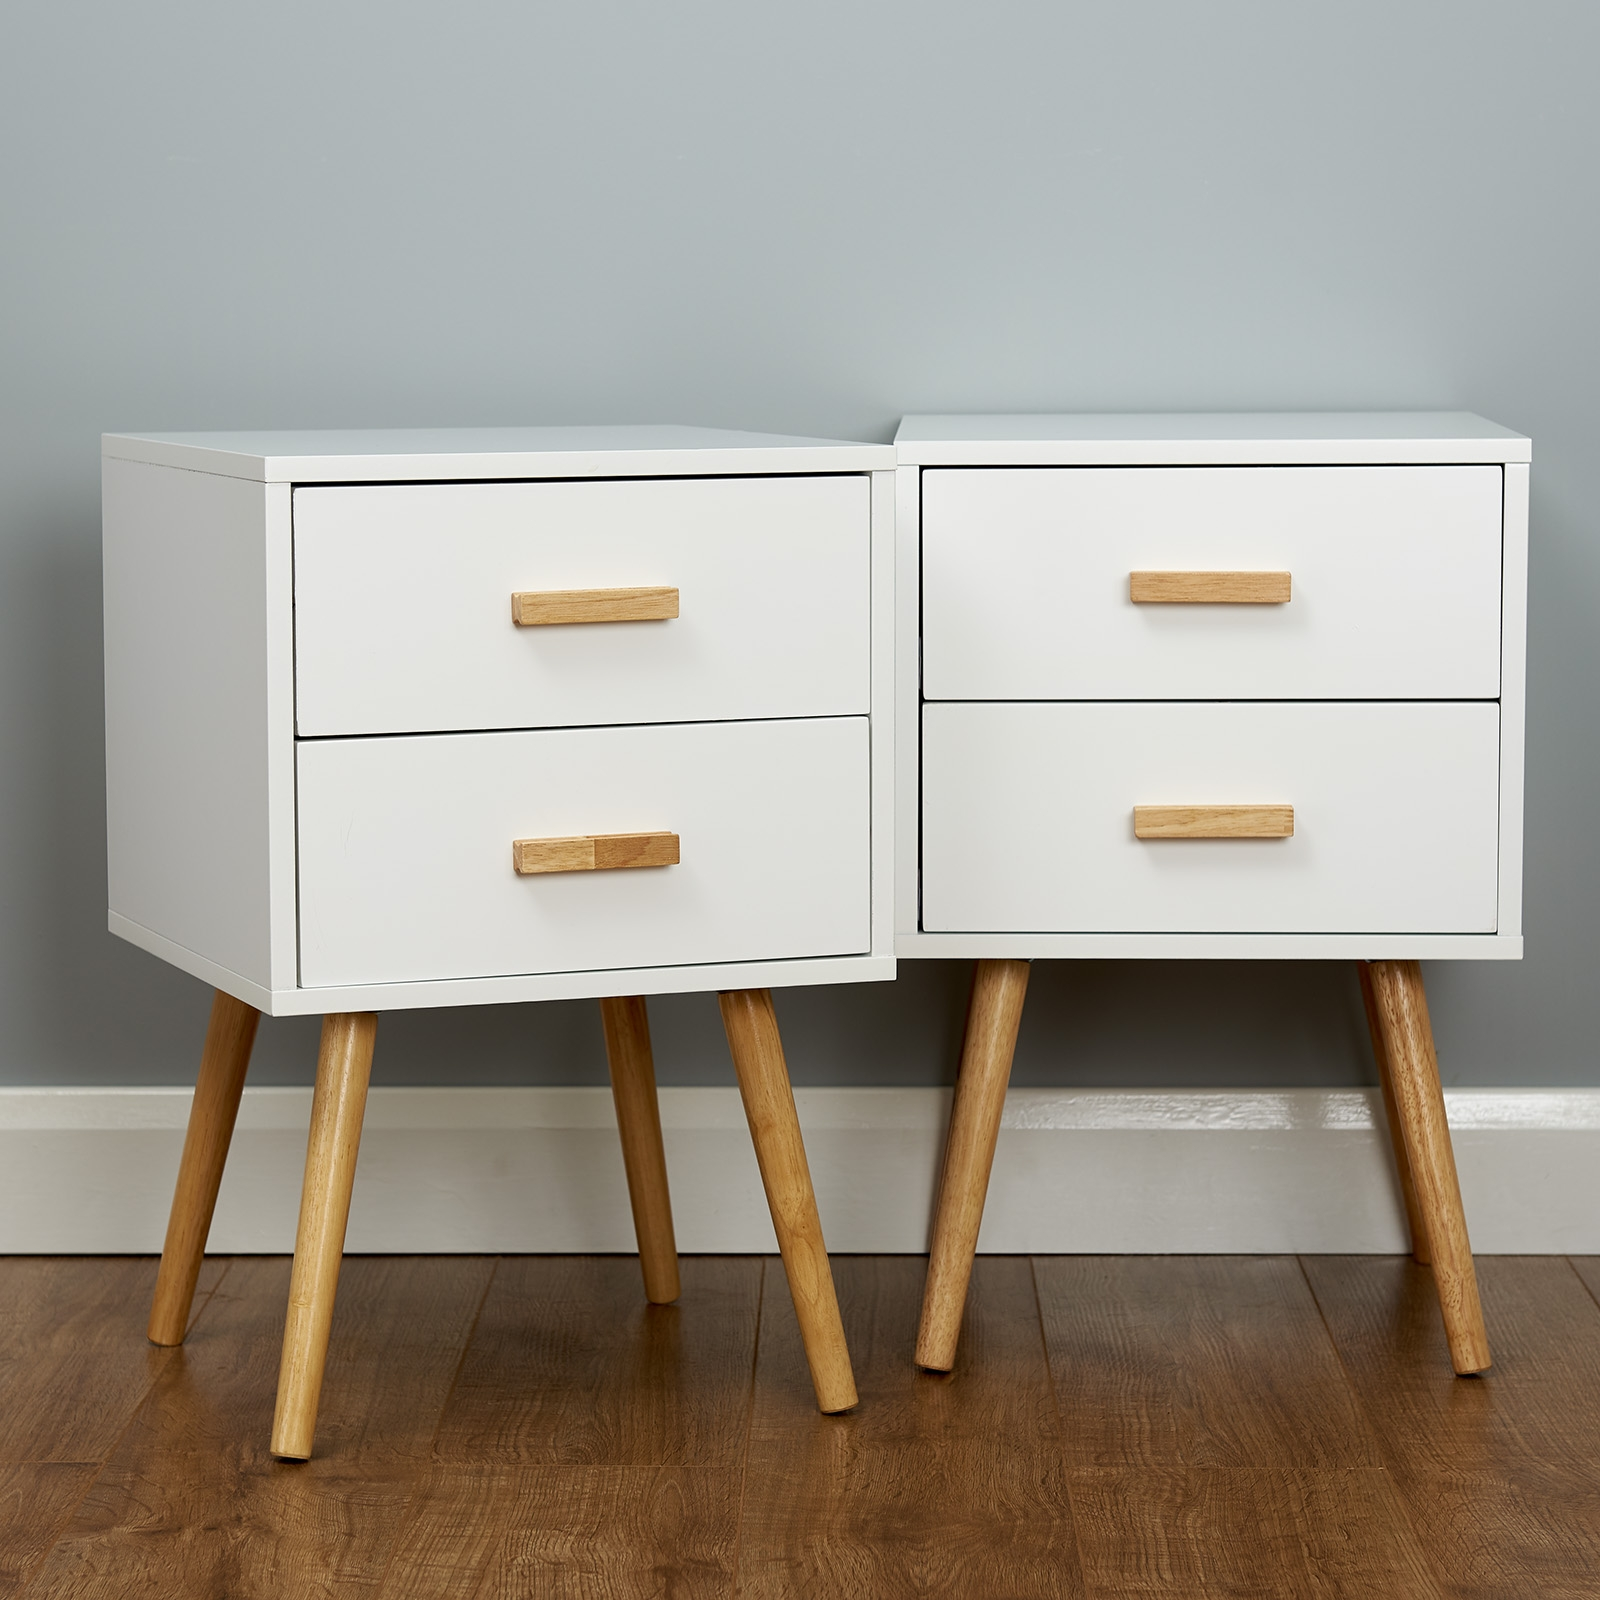 two white retro bedside tables stood together in a grey painted room with wooden flooring